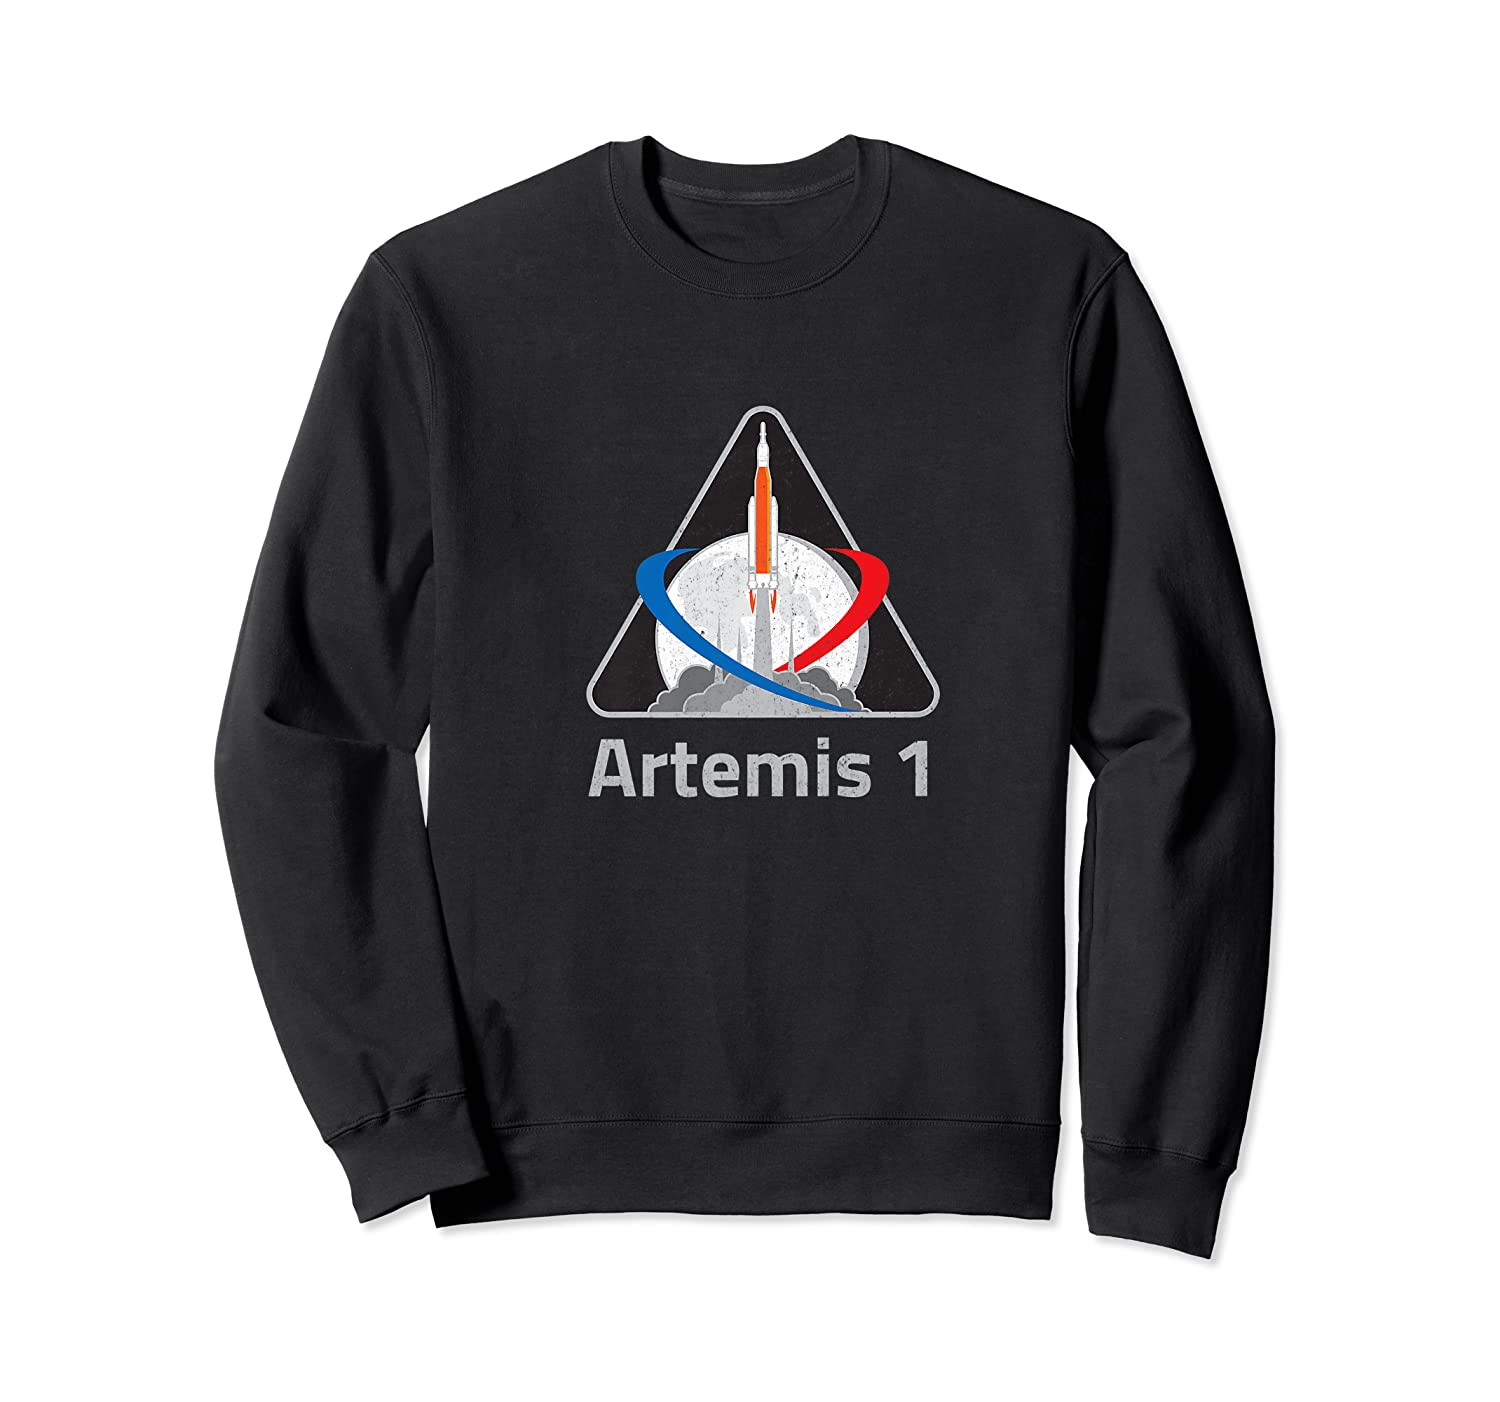 Artemis 1 Patch We Are Going Moon To Mars 2024 Vintage Shirts Crewneck Sweater